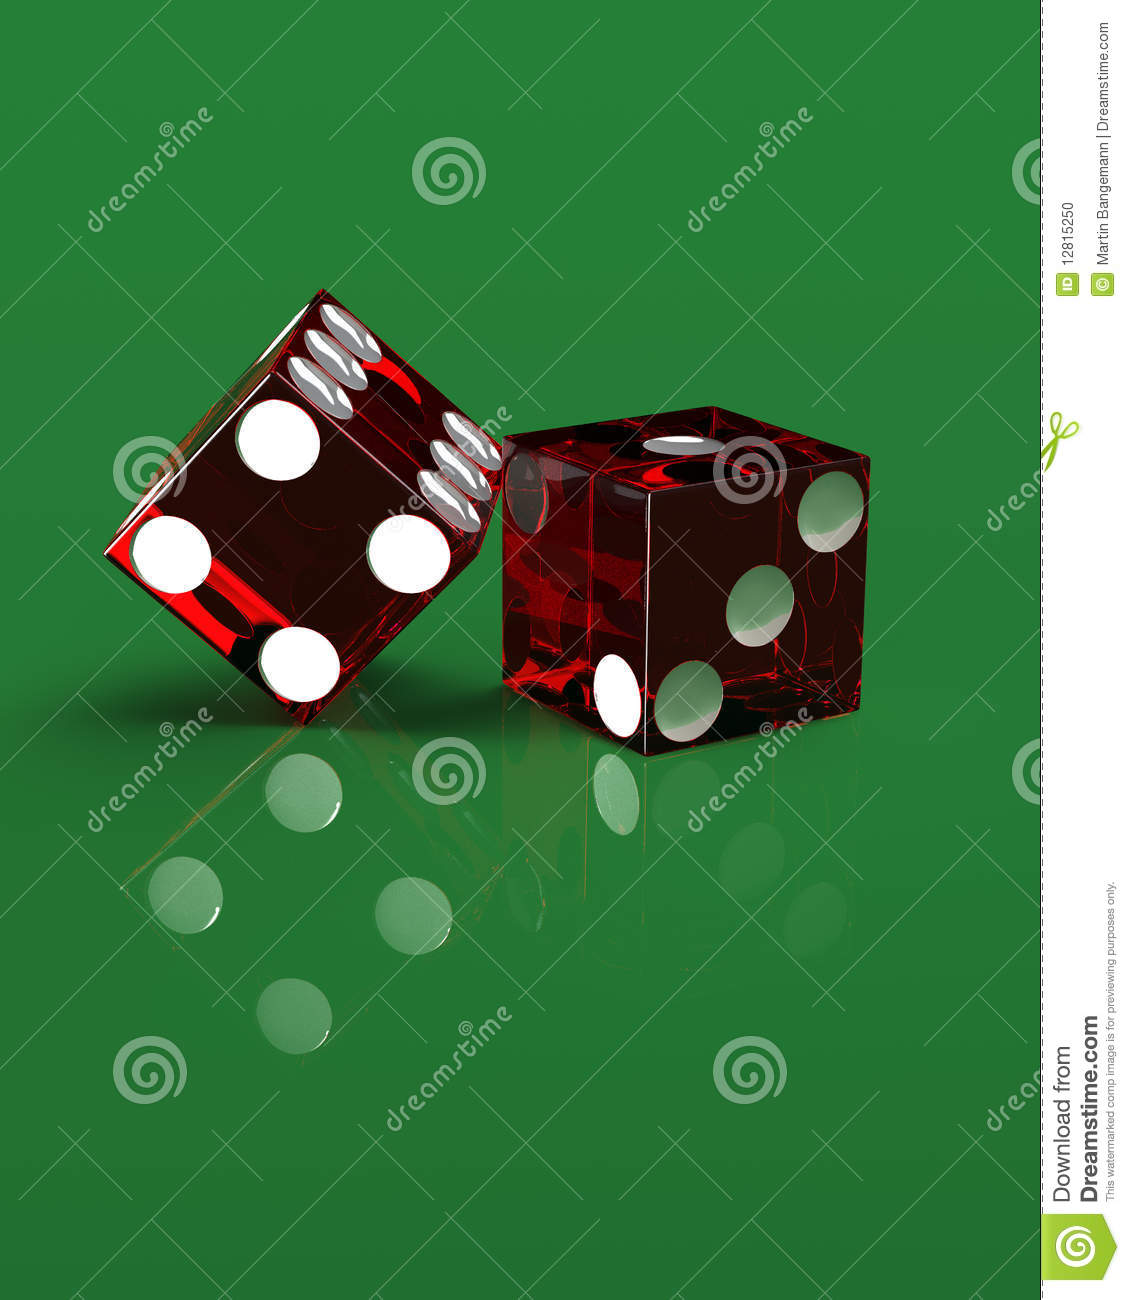 casino games using dice